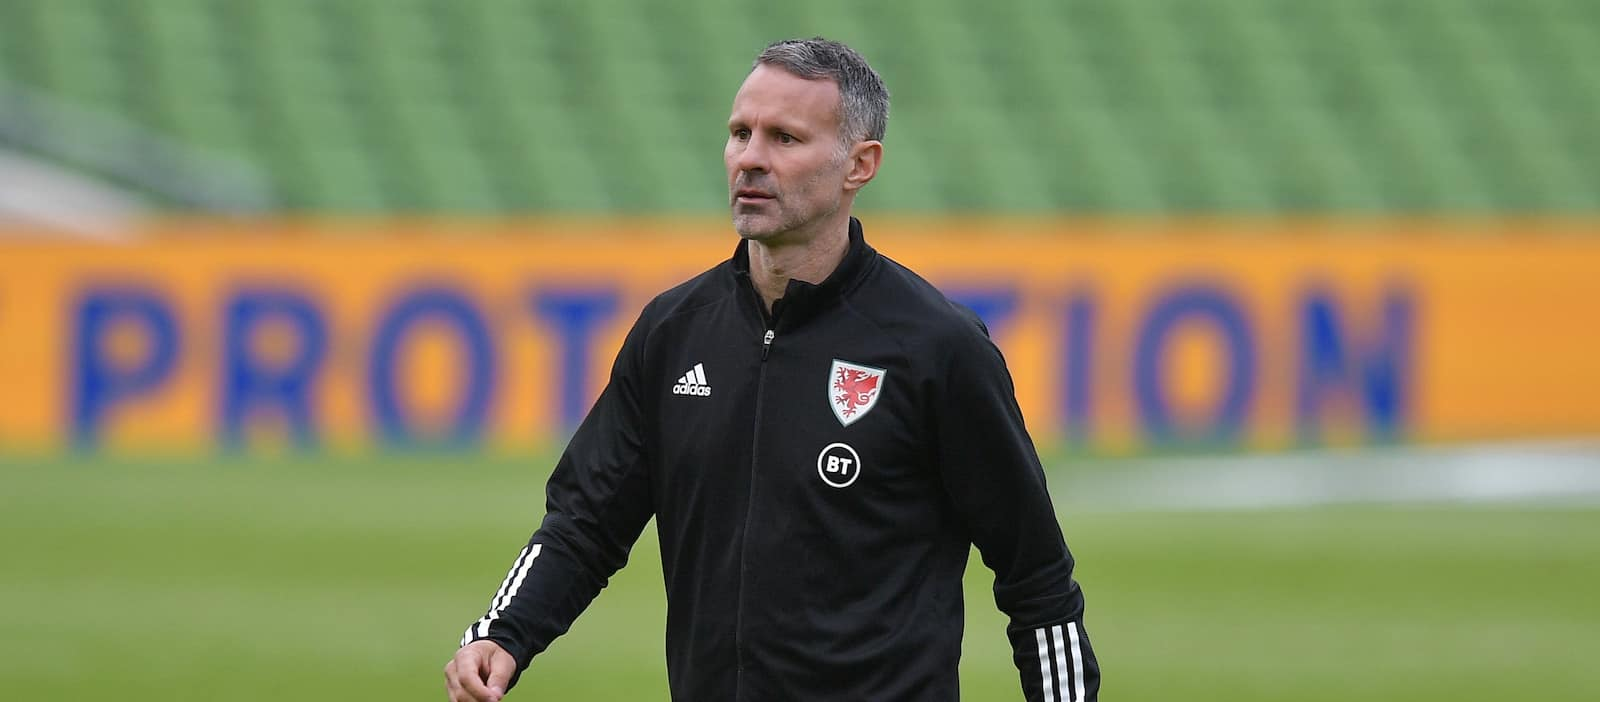 Ryan Giggs denies assault claims following arrest in Worsley